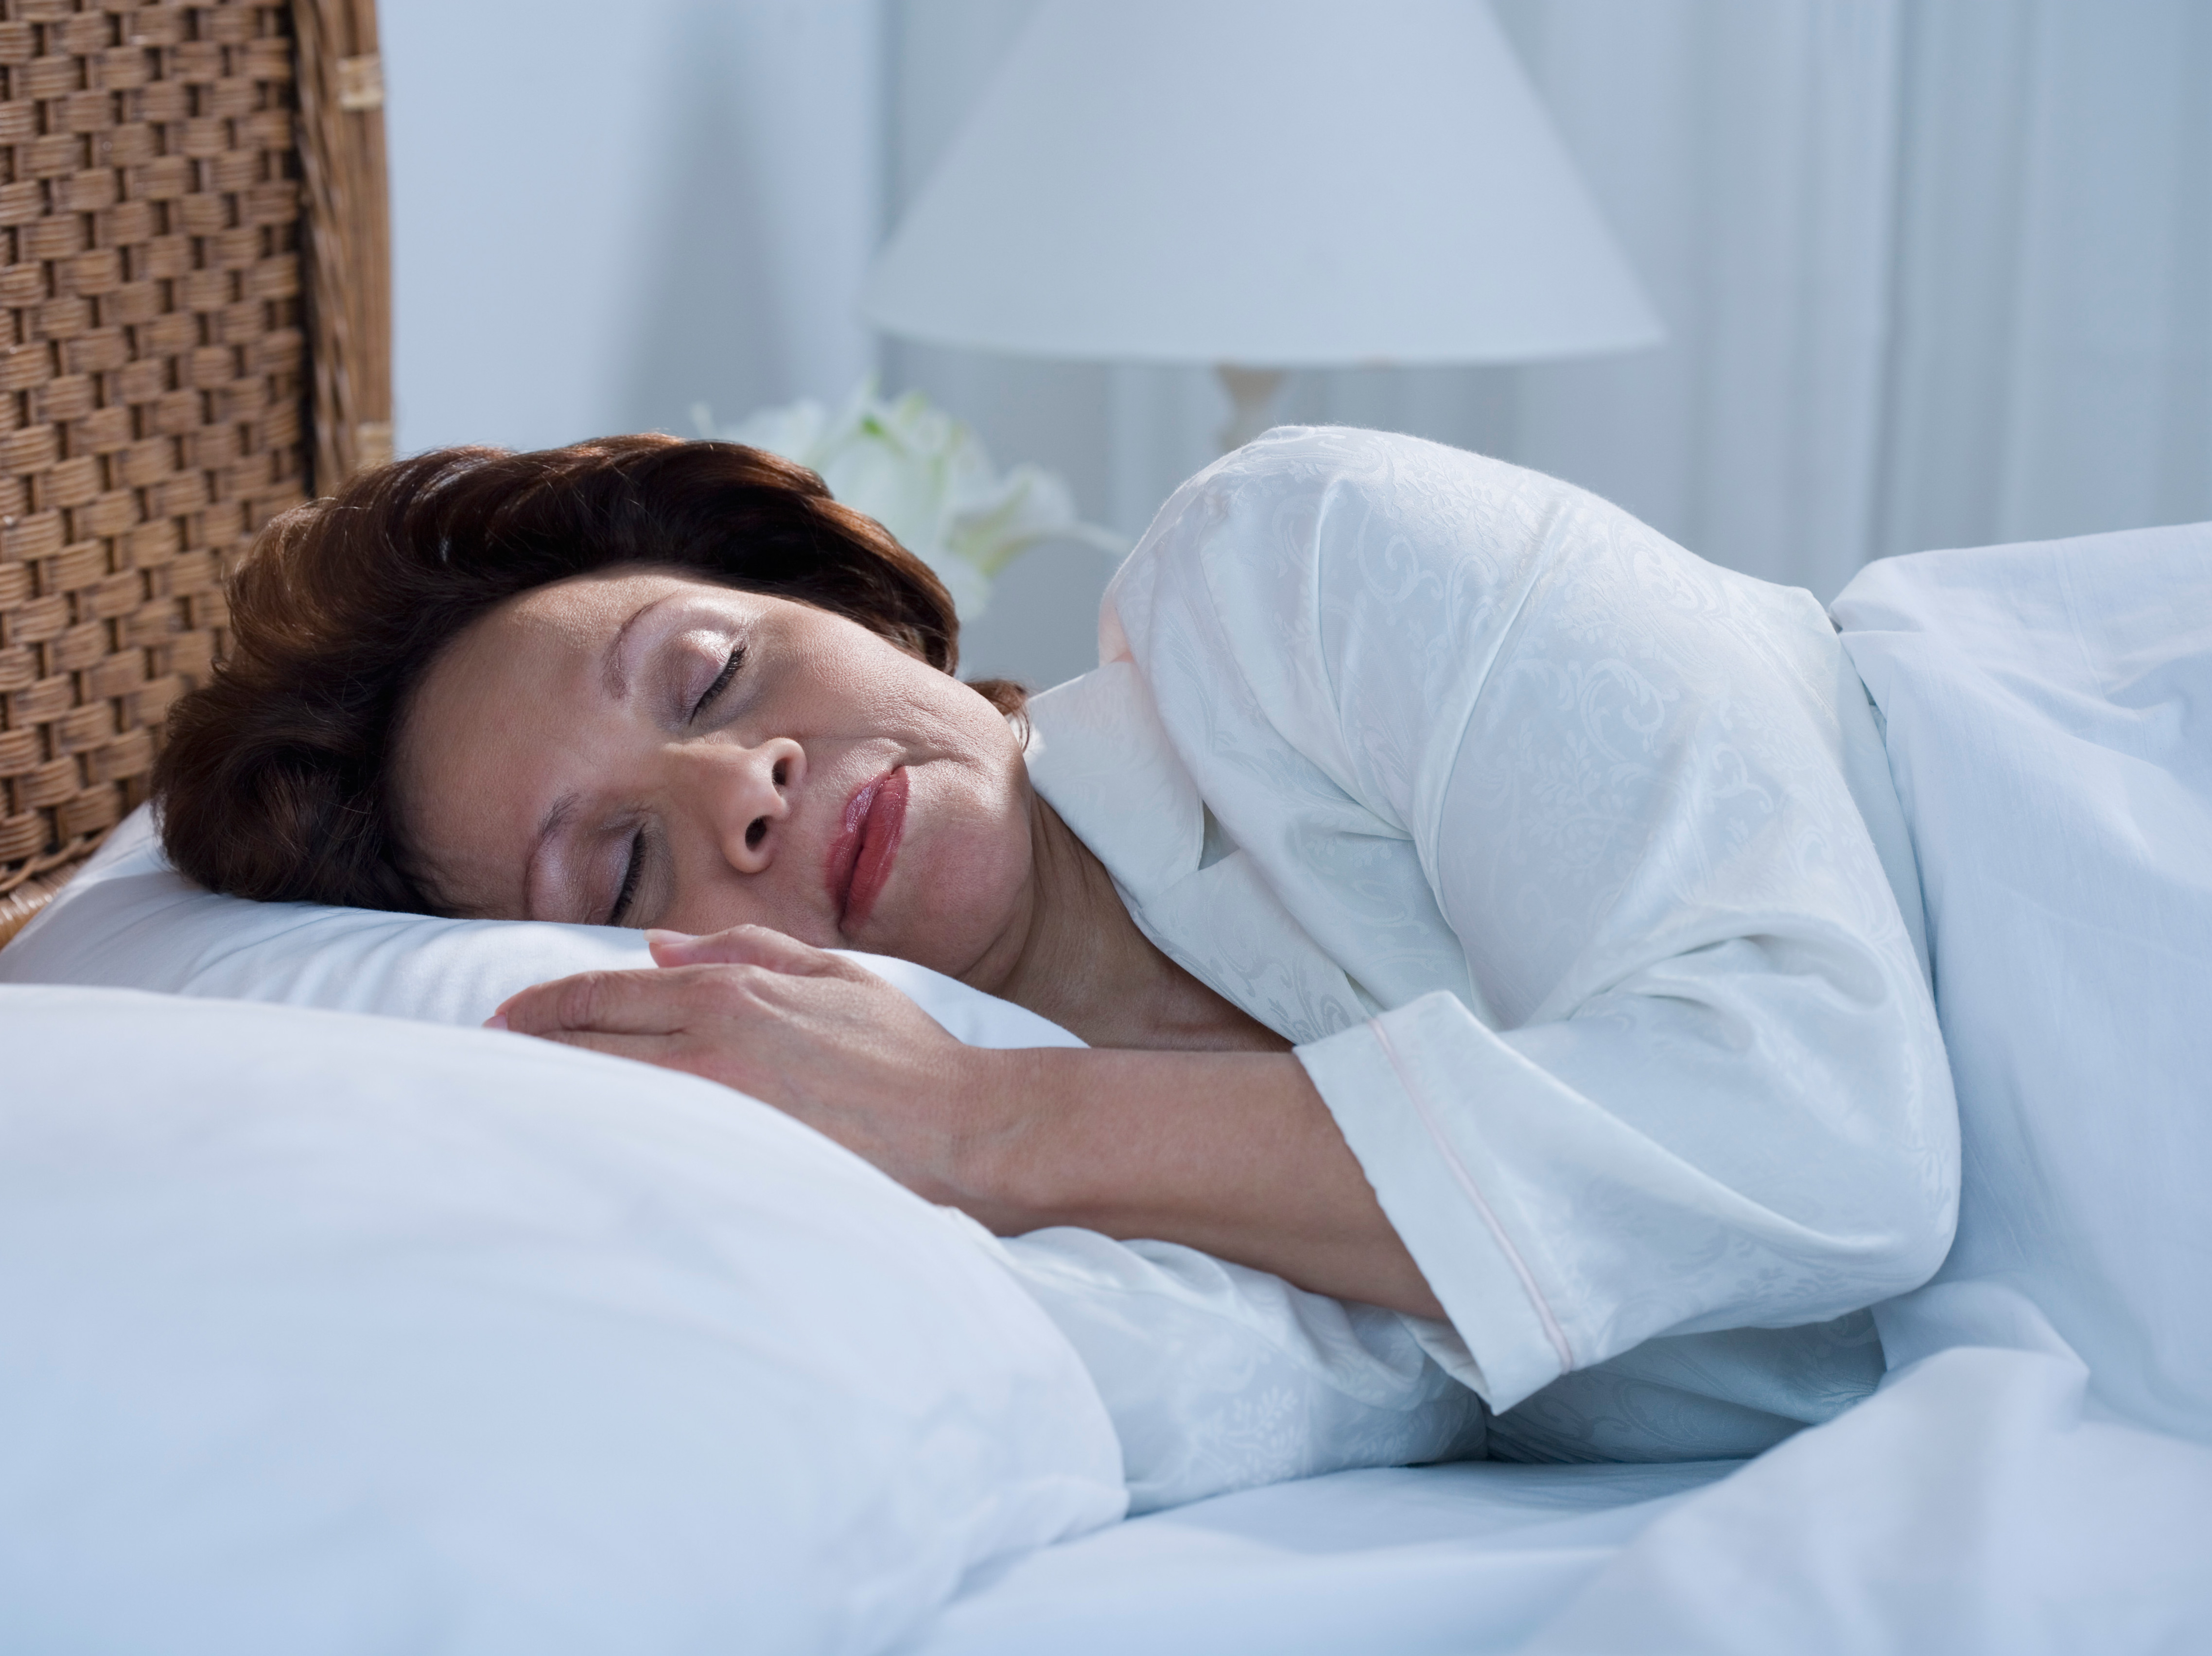 The activity that boosts sleep and soothes disease-causing inflammation